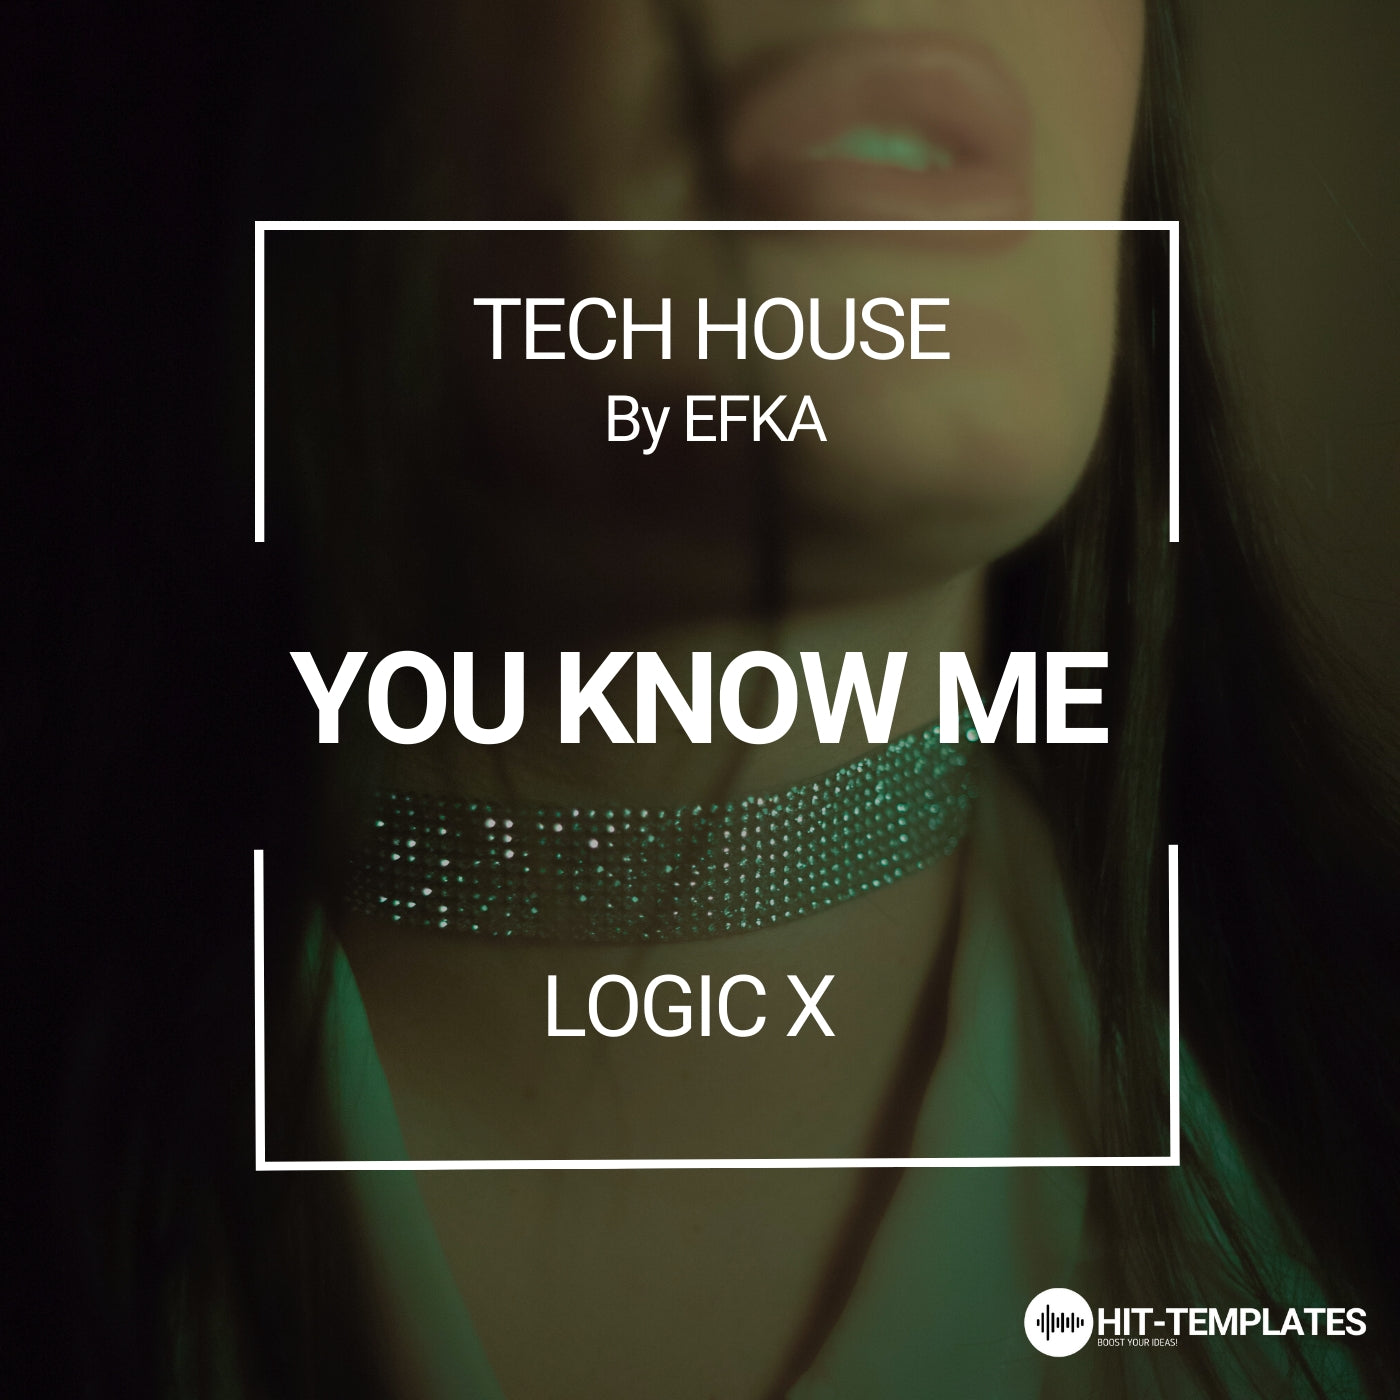 YOU KNOW ME - TECH HOUSE